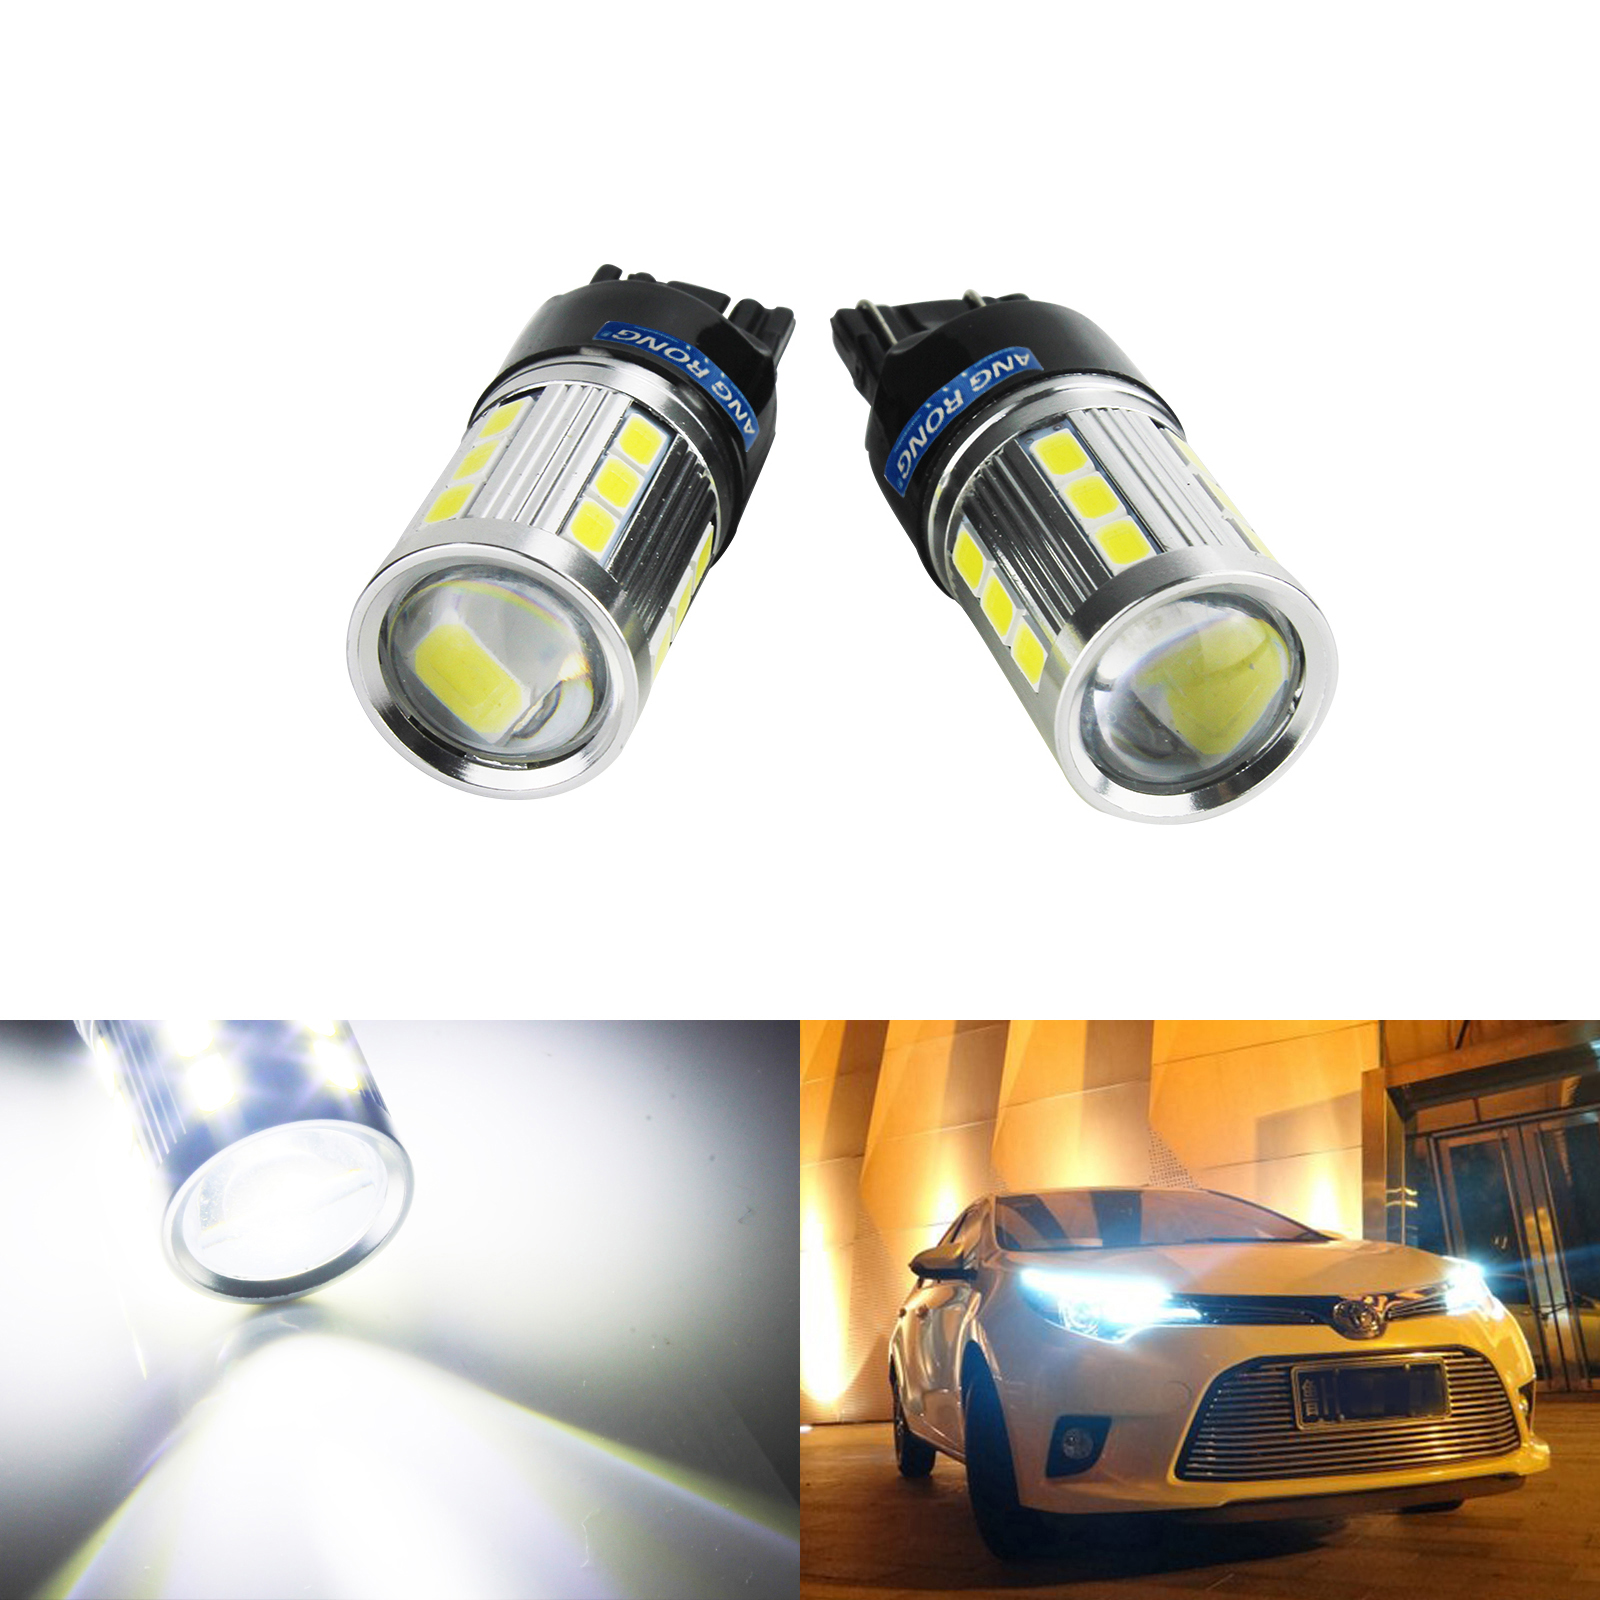 90 Bulbs 55w White To Fit Headlight Vauxhall Astra MK5 2.0 VXR H7 Xenon